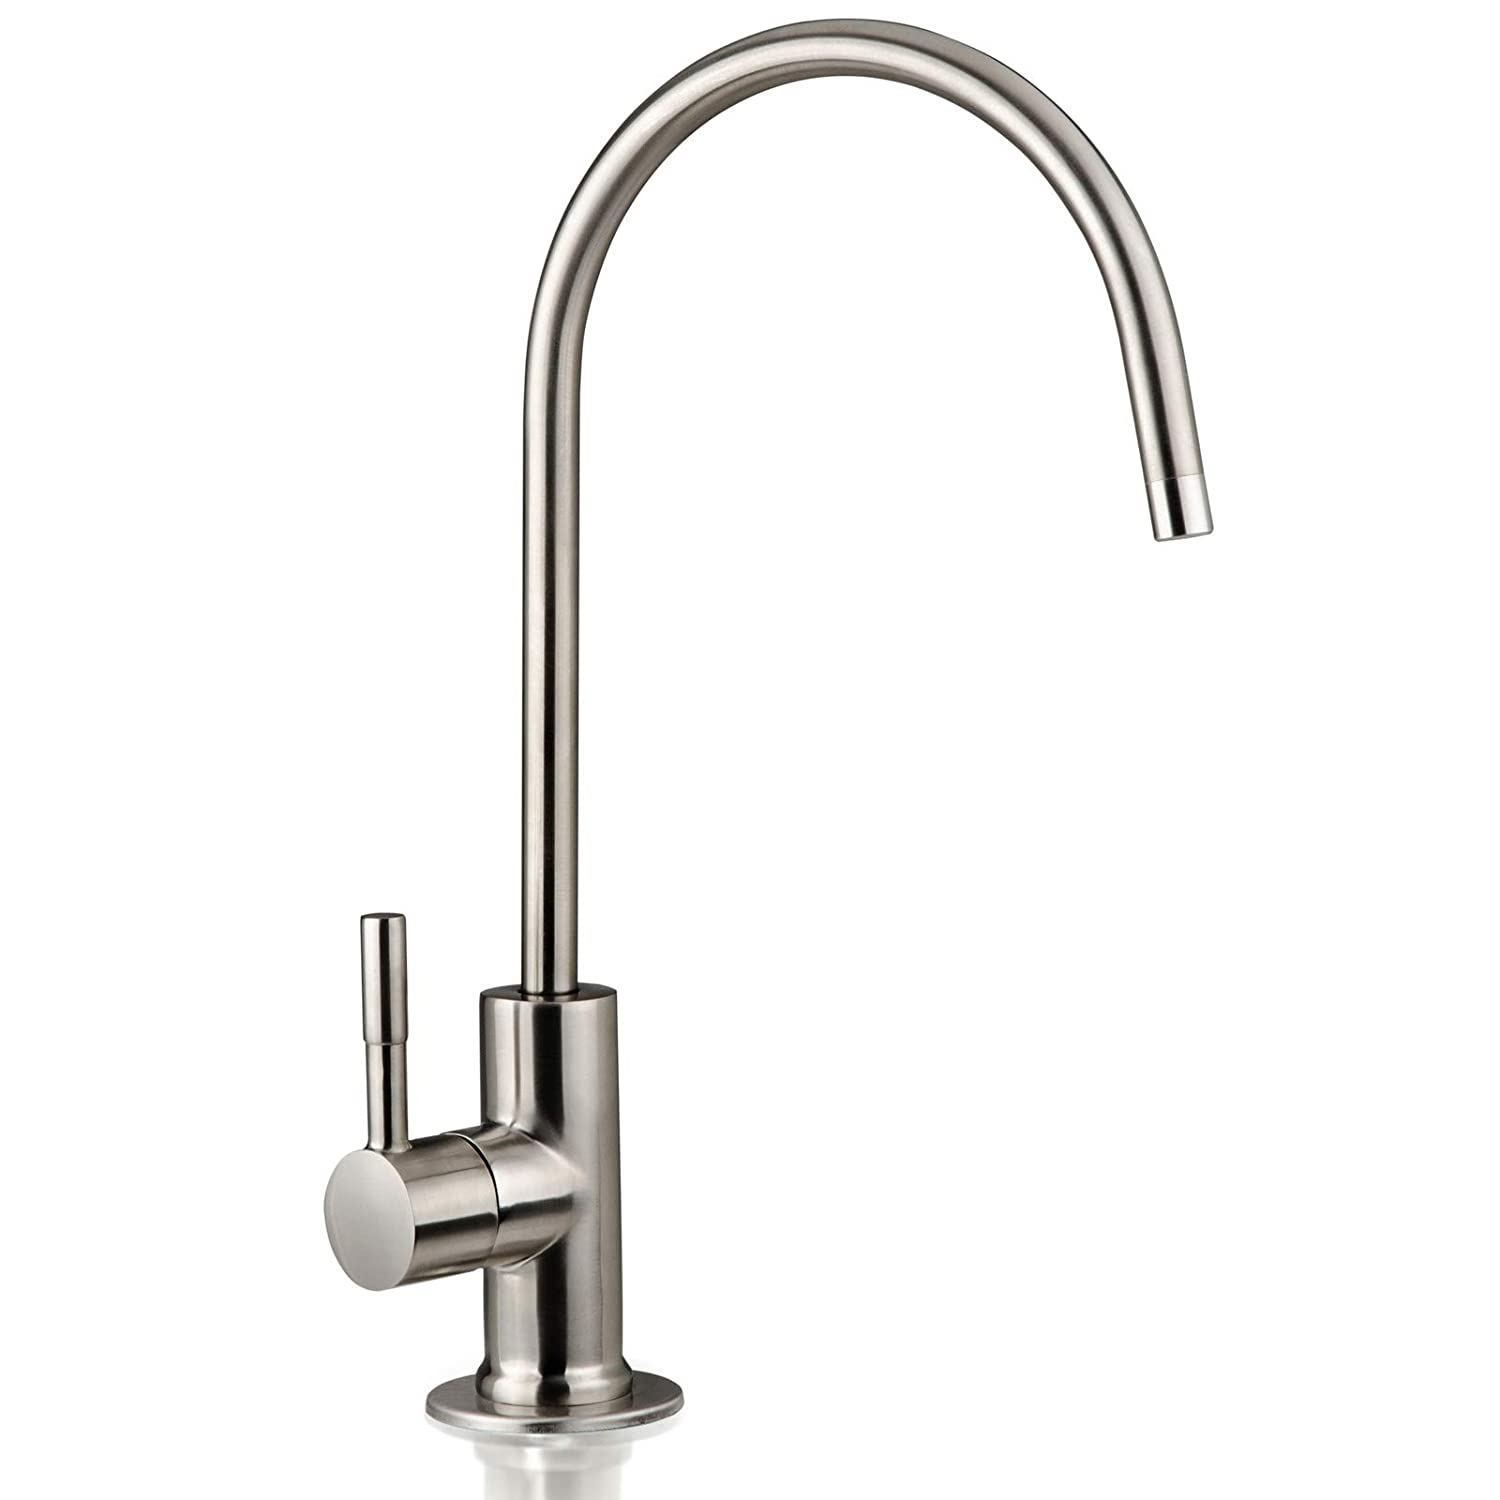 iSpring GA1-BN Heavy Duty Non-Air Gap Drinking Faucet for Water Filtration, Reverse Osmosis Systems-Brushed Nickel-Contemporary Style High-Spout